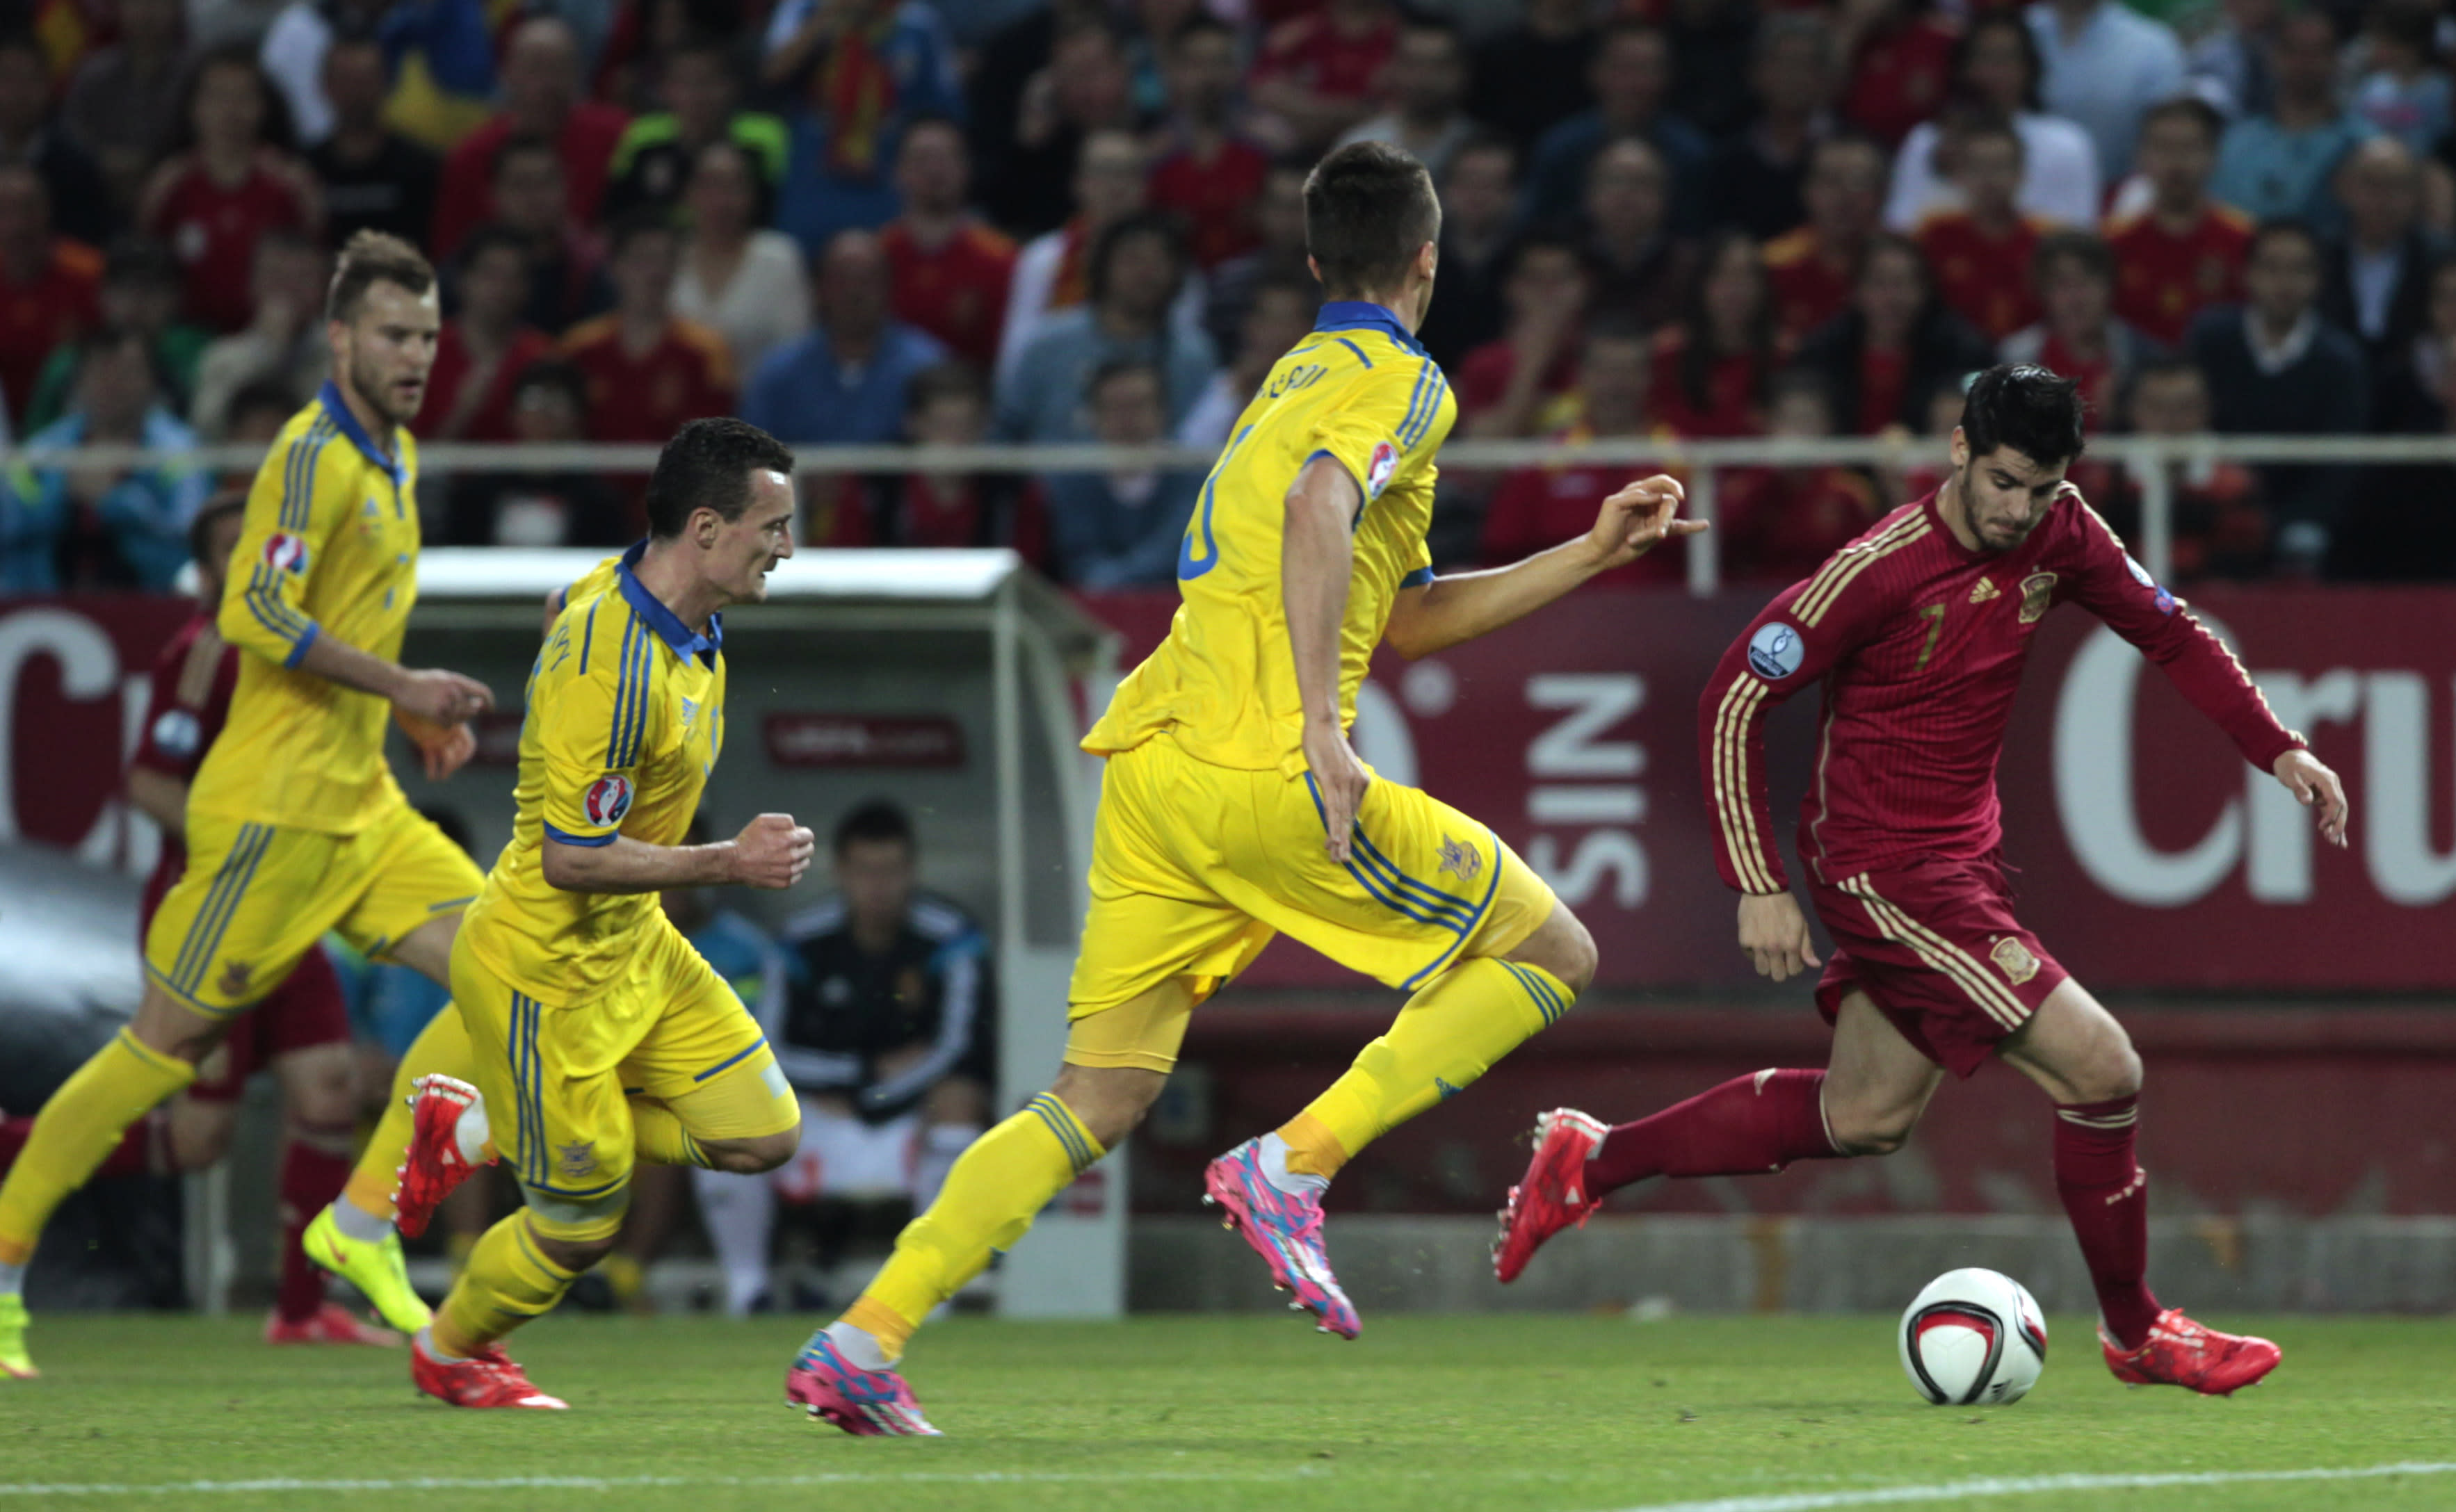 Spain beats Ukraine 1-0 in Euro 2016 qualifier